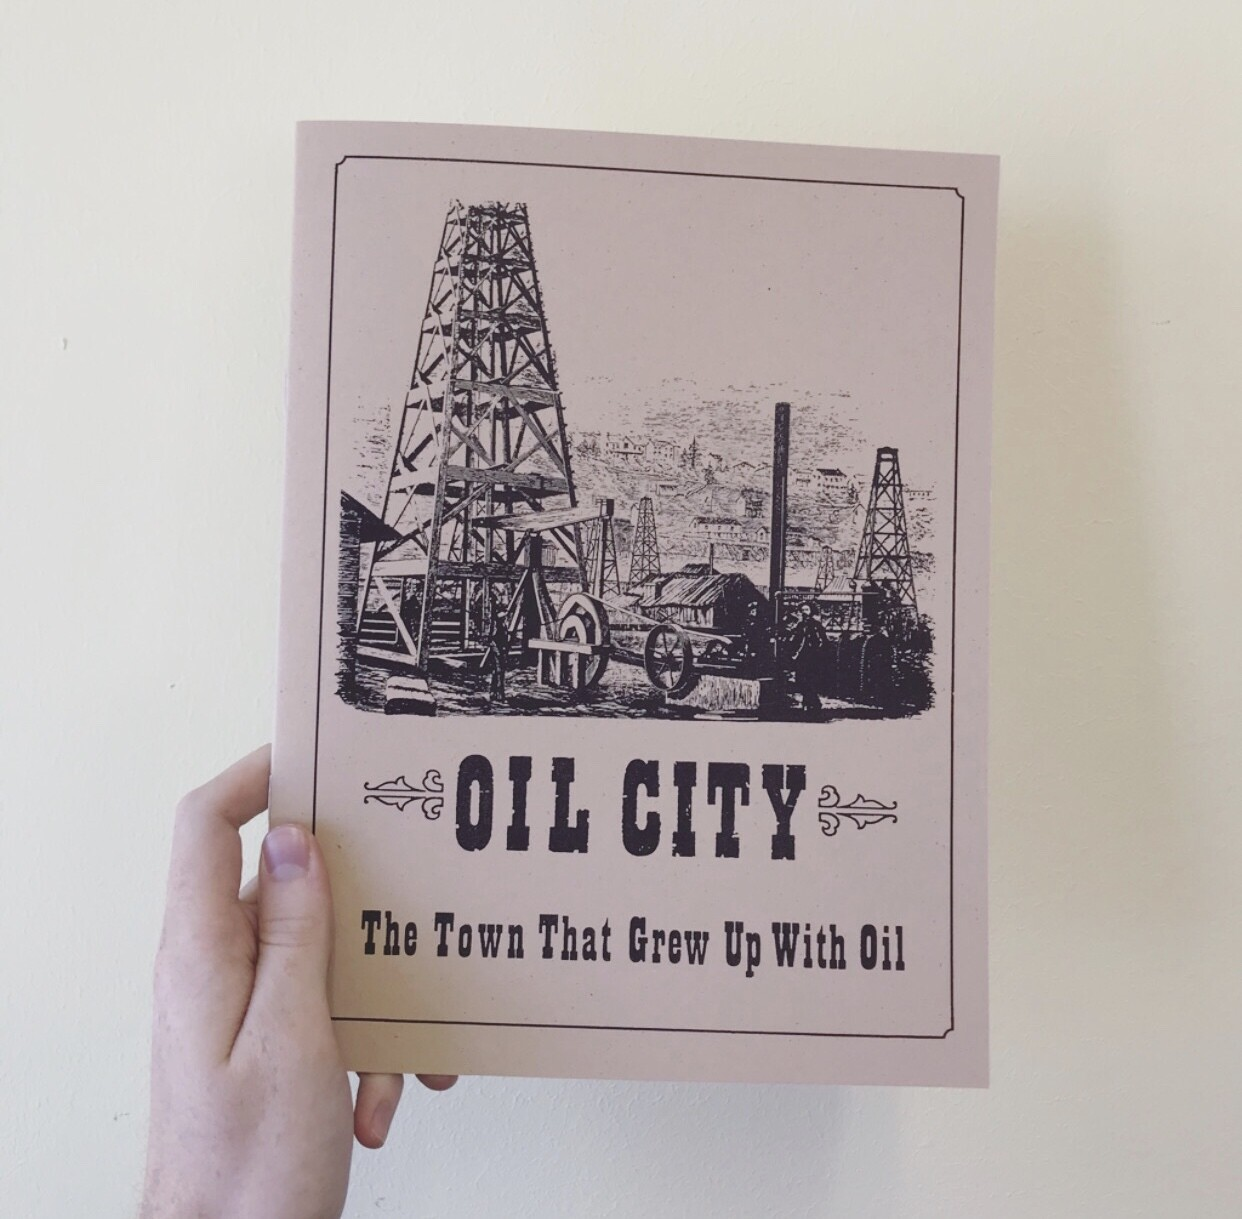 Oil City: The Town That Grew Up With Oil (2nd Edition)